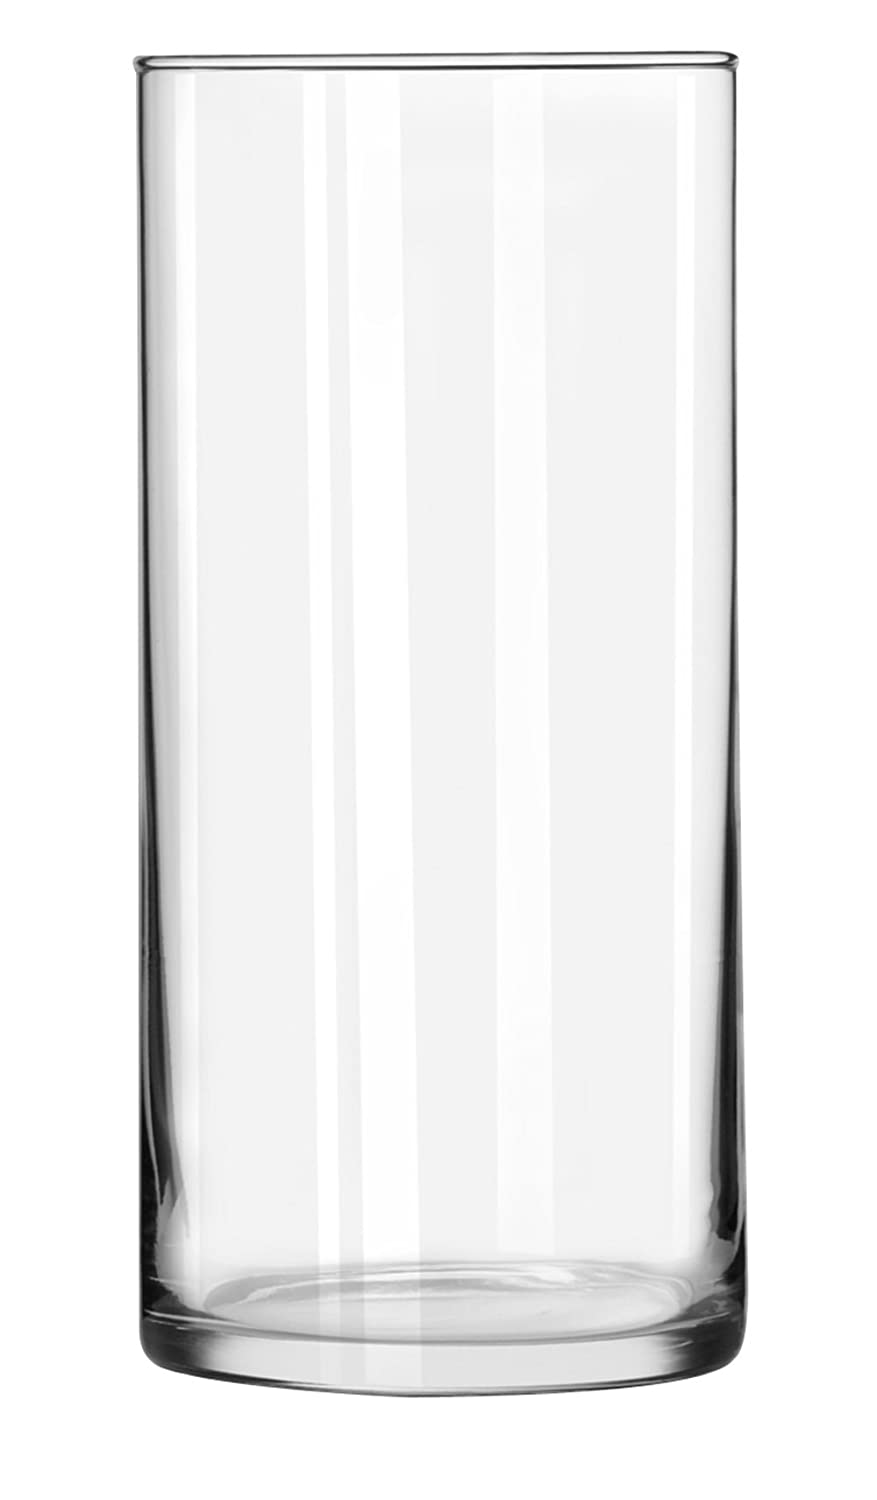 Amazoncom Libbey Cylinder Vase Inch Clear Set Of - Clear glass floor vases